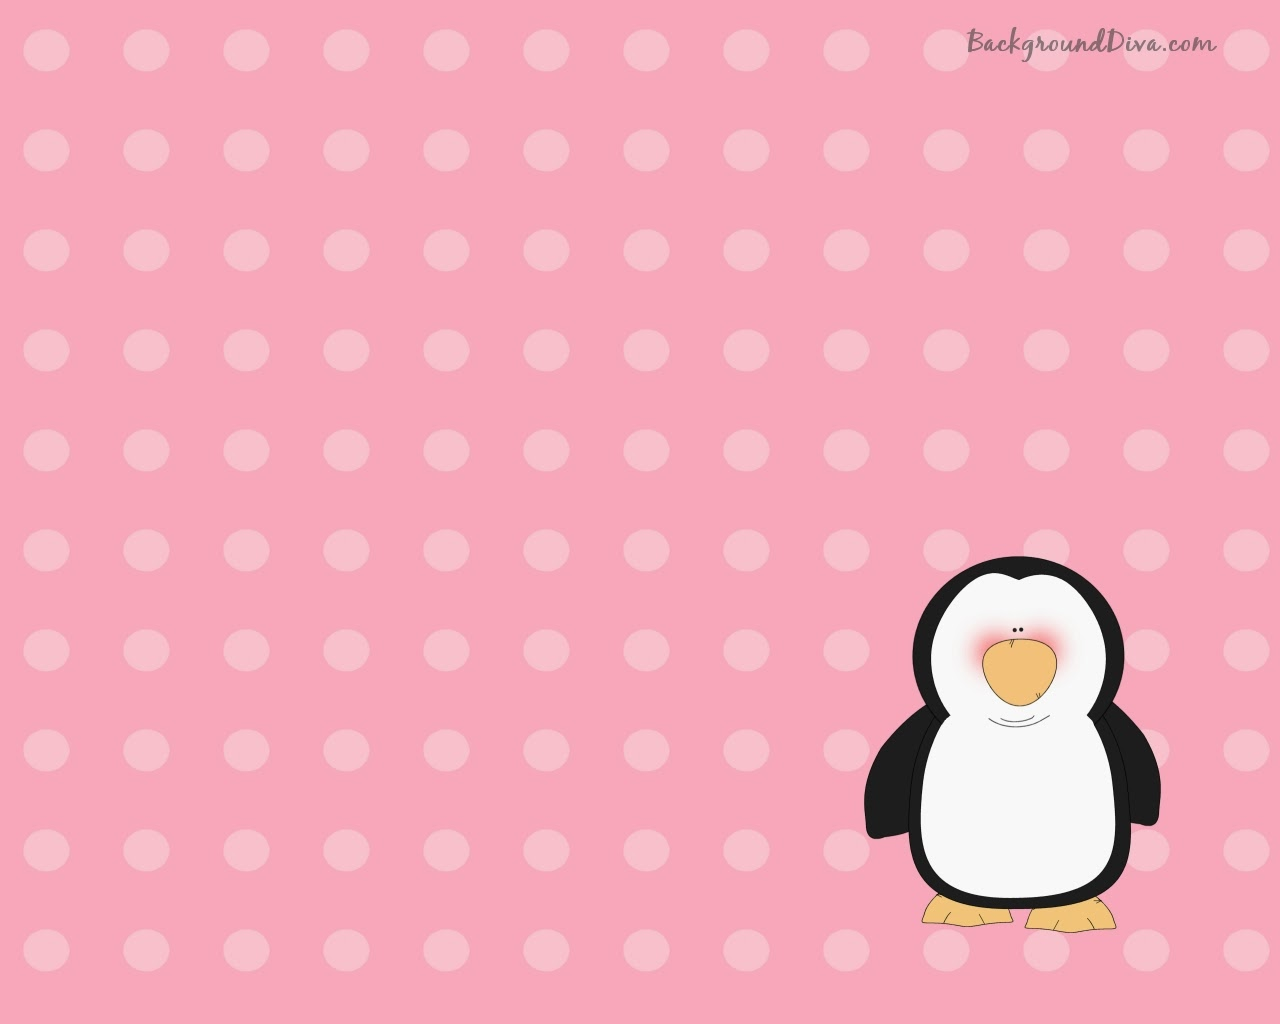 Cute Wallpapers for Desktop 3D Cute Wallpapers for Desktop Cute 1280x1024